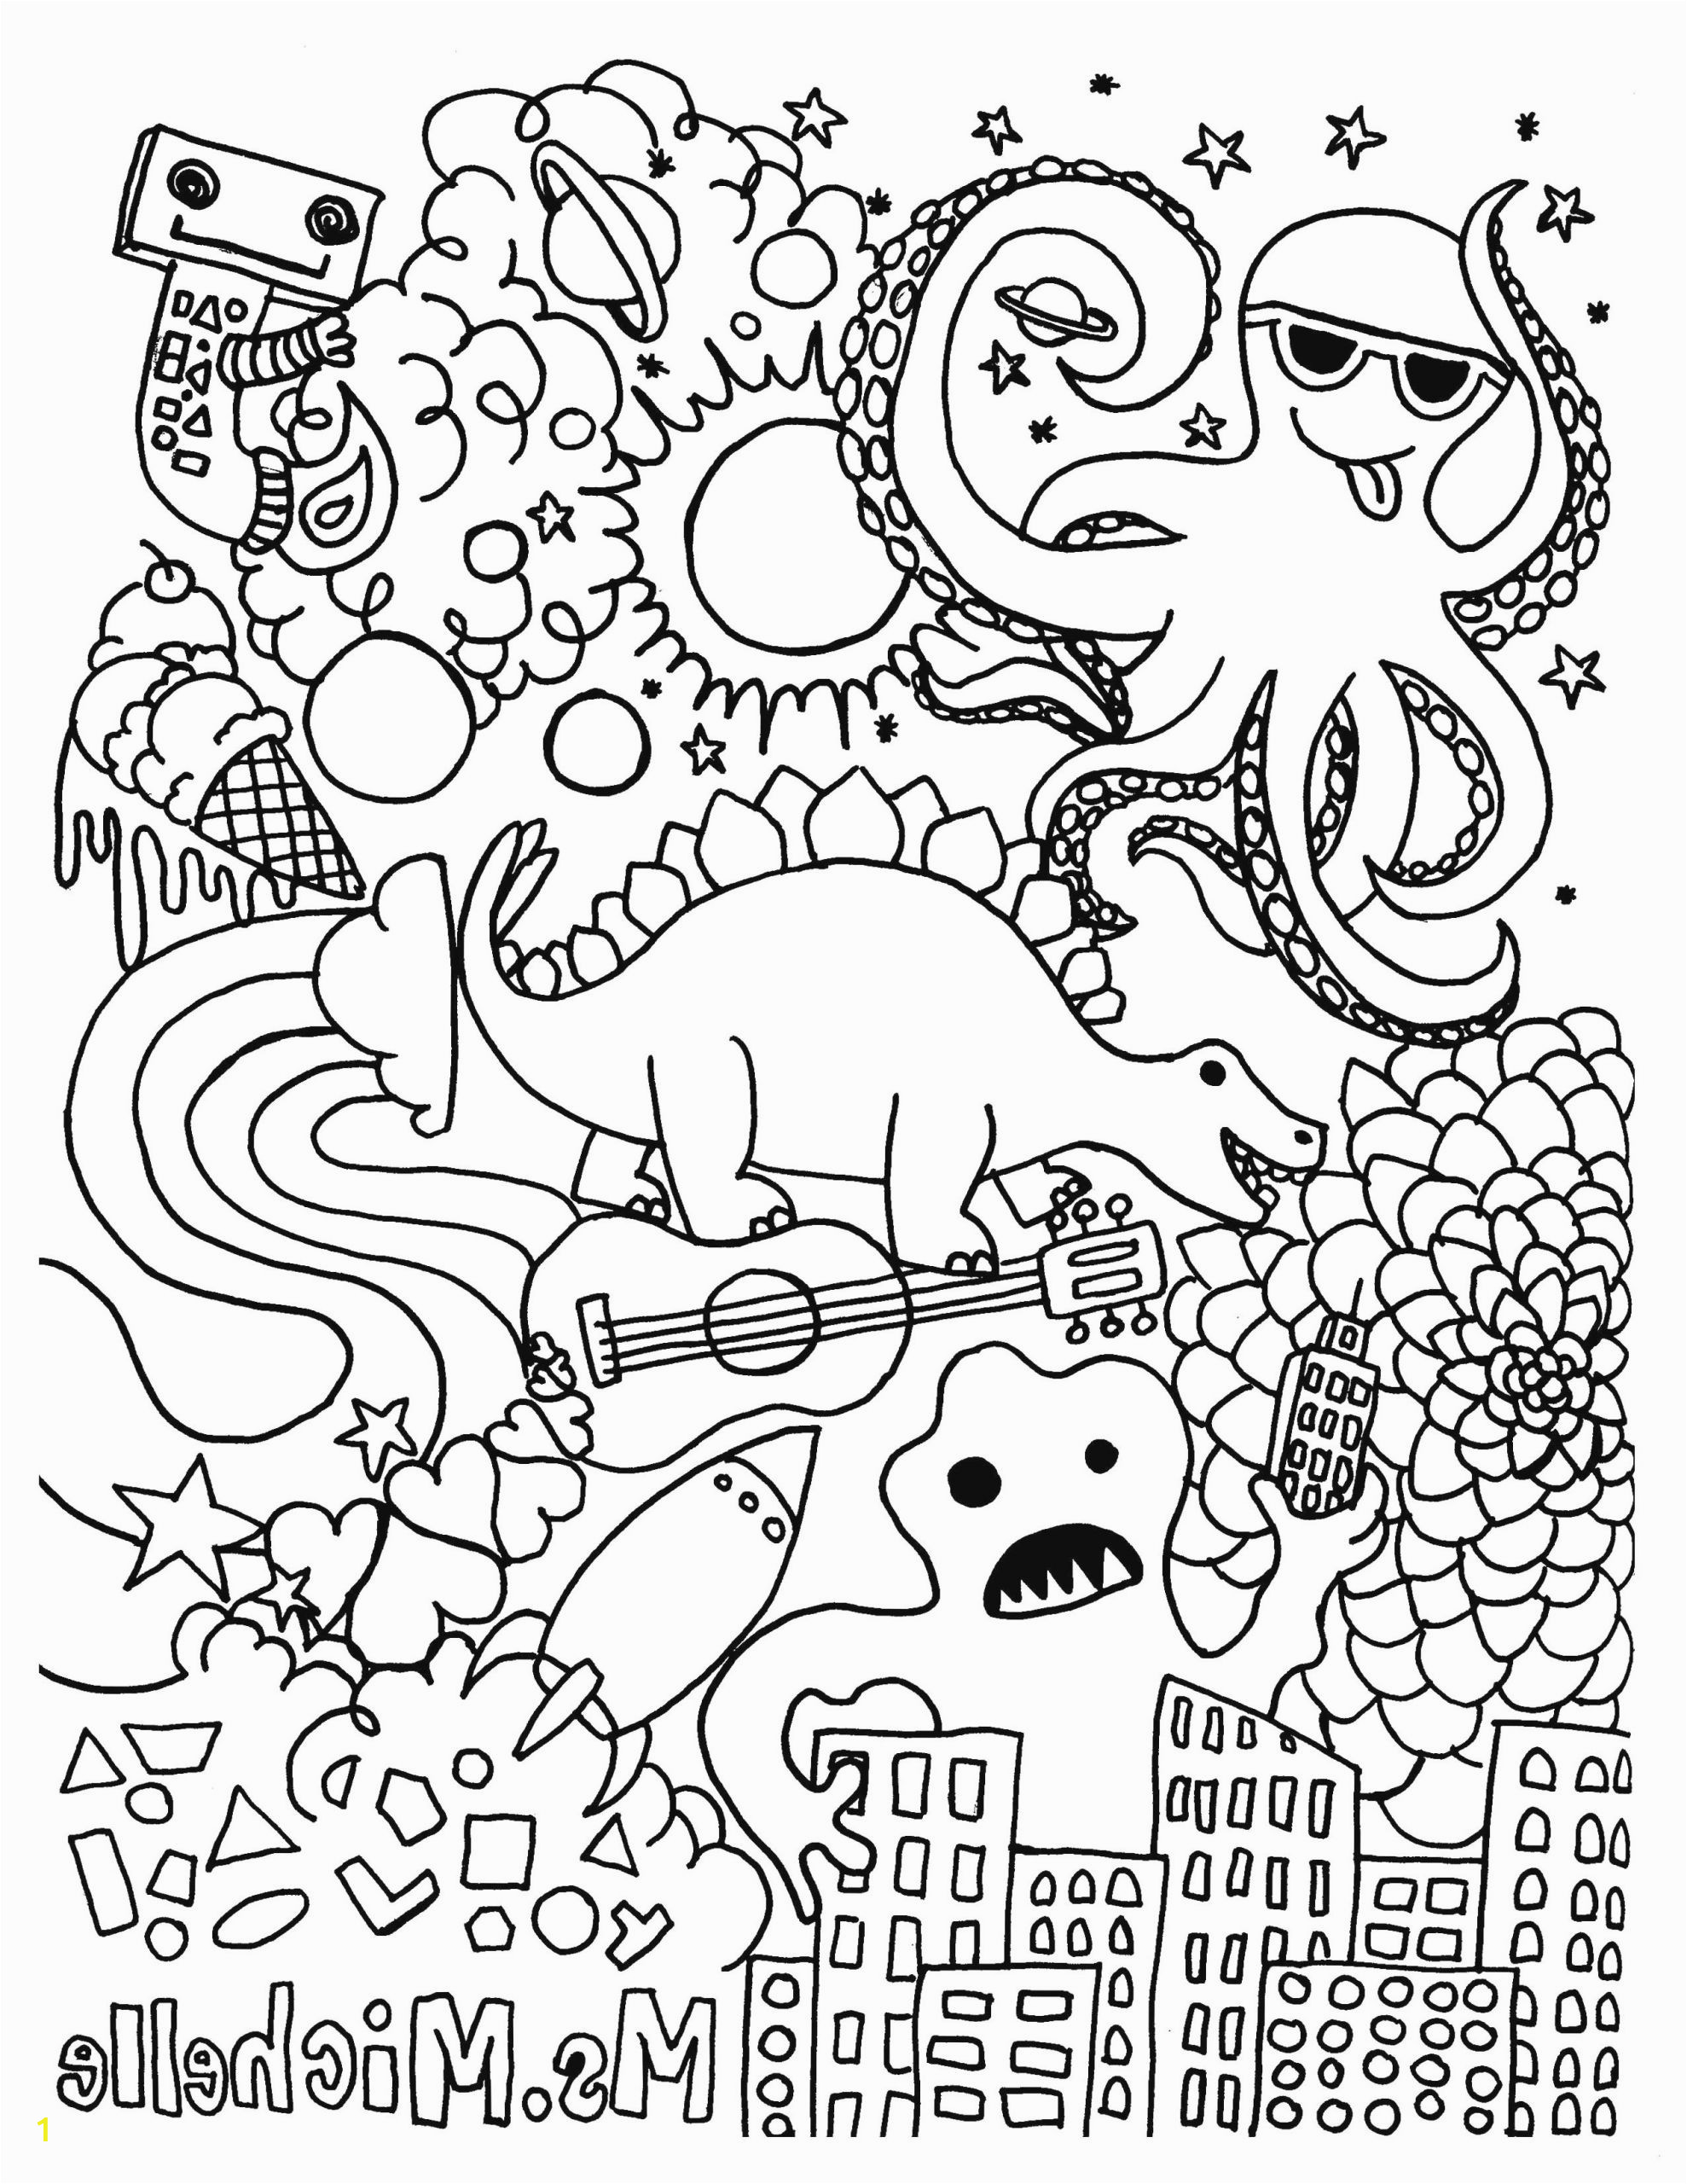 free printable coloring sheets new 23 beautiful image barbie coloring page free of free printable coloring sheets scaled